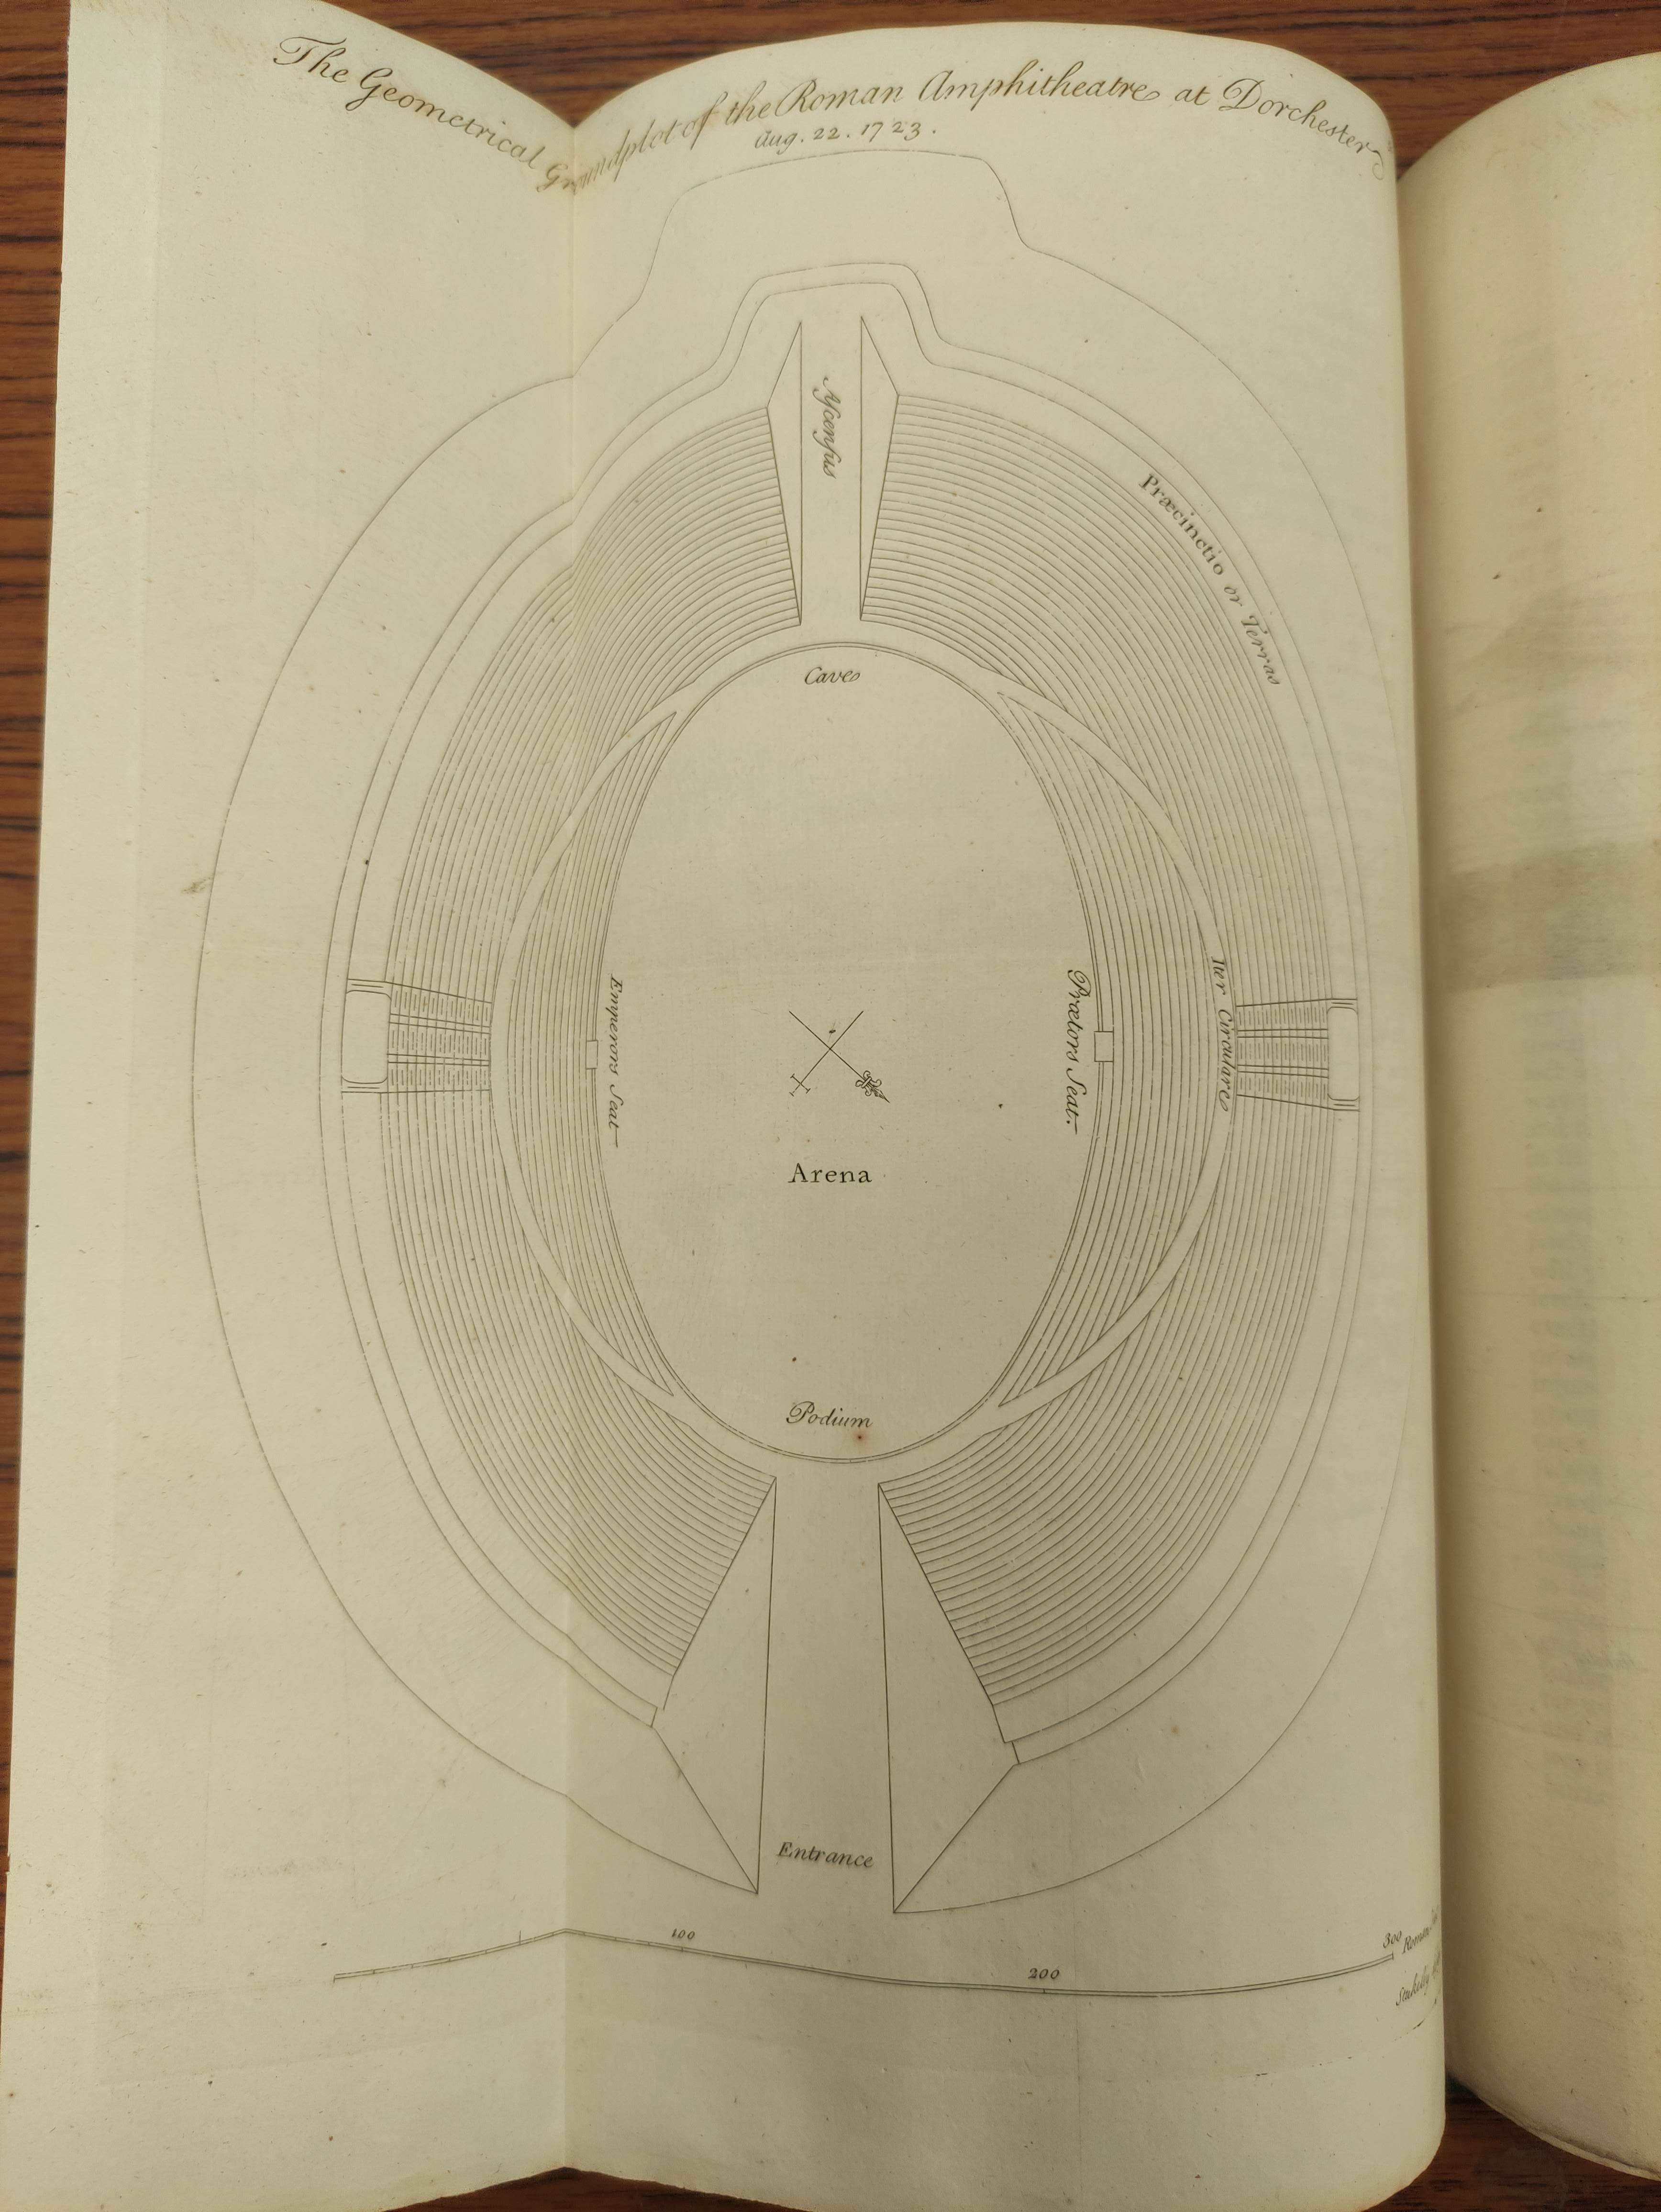 STUKELEY WILLIAM.Itinerarium Curiosum or An Account of the Antiquities & Remarkable Curiousities - Image 8 of 10